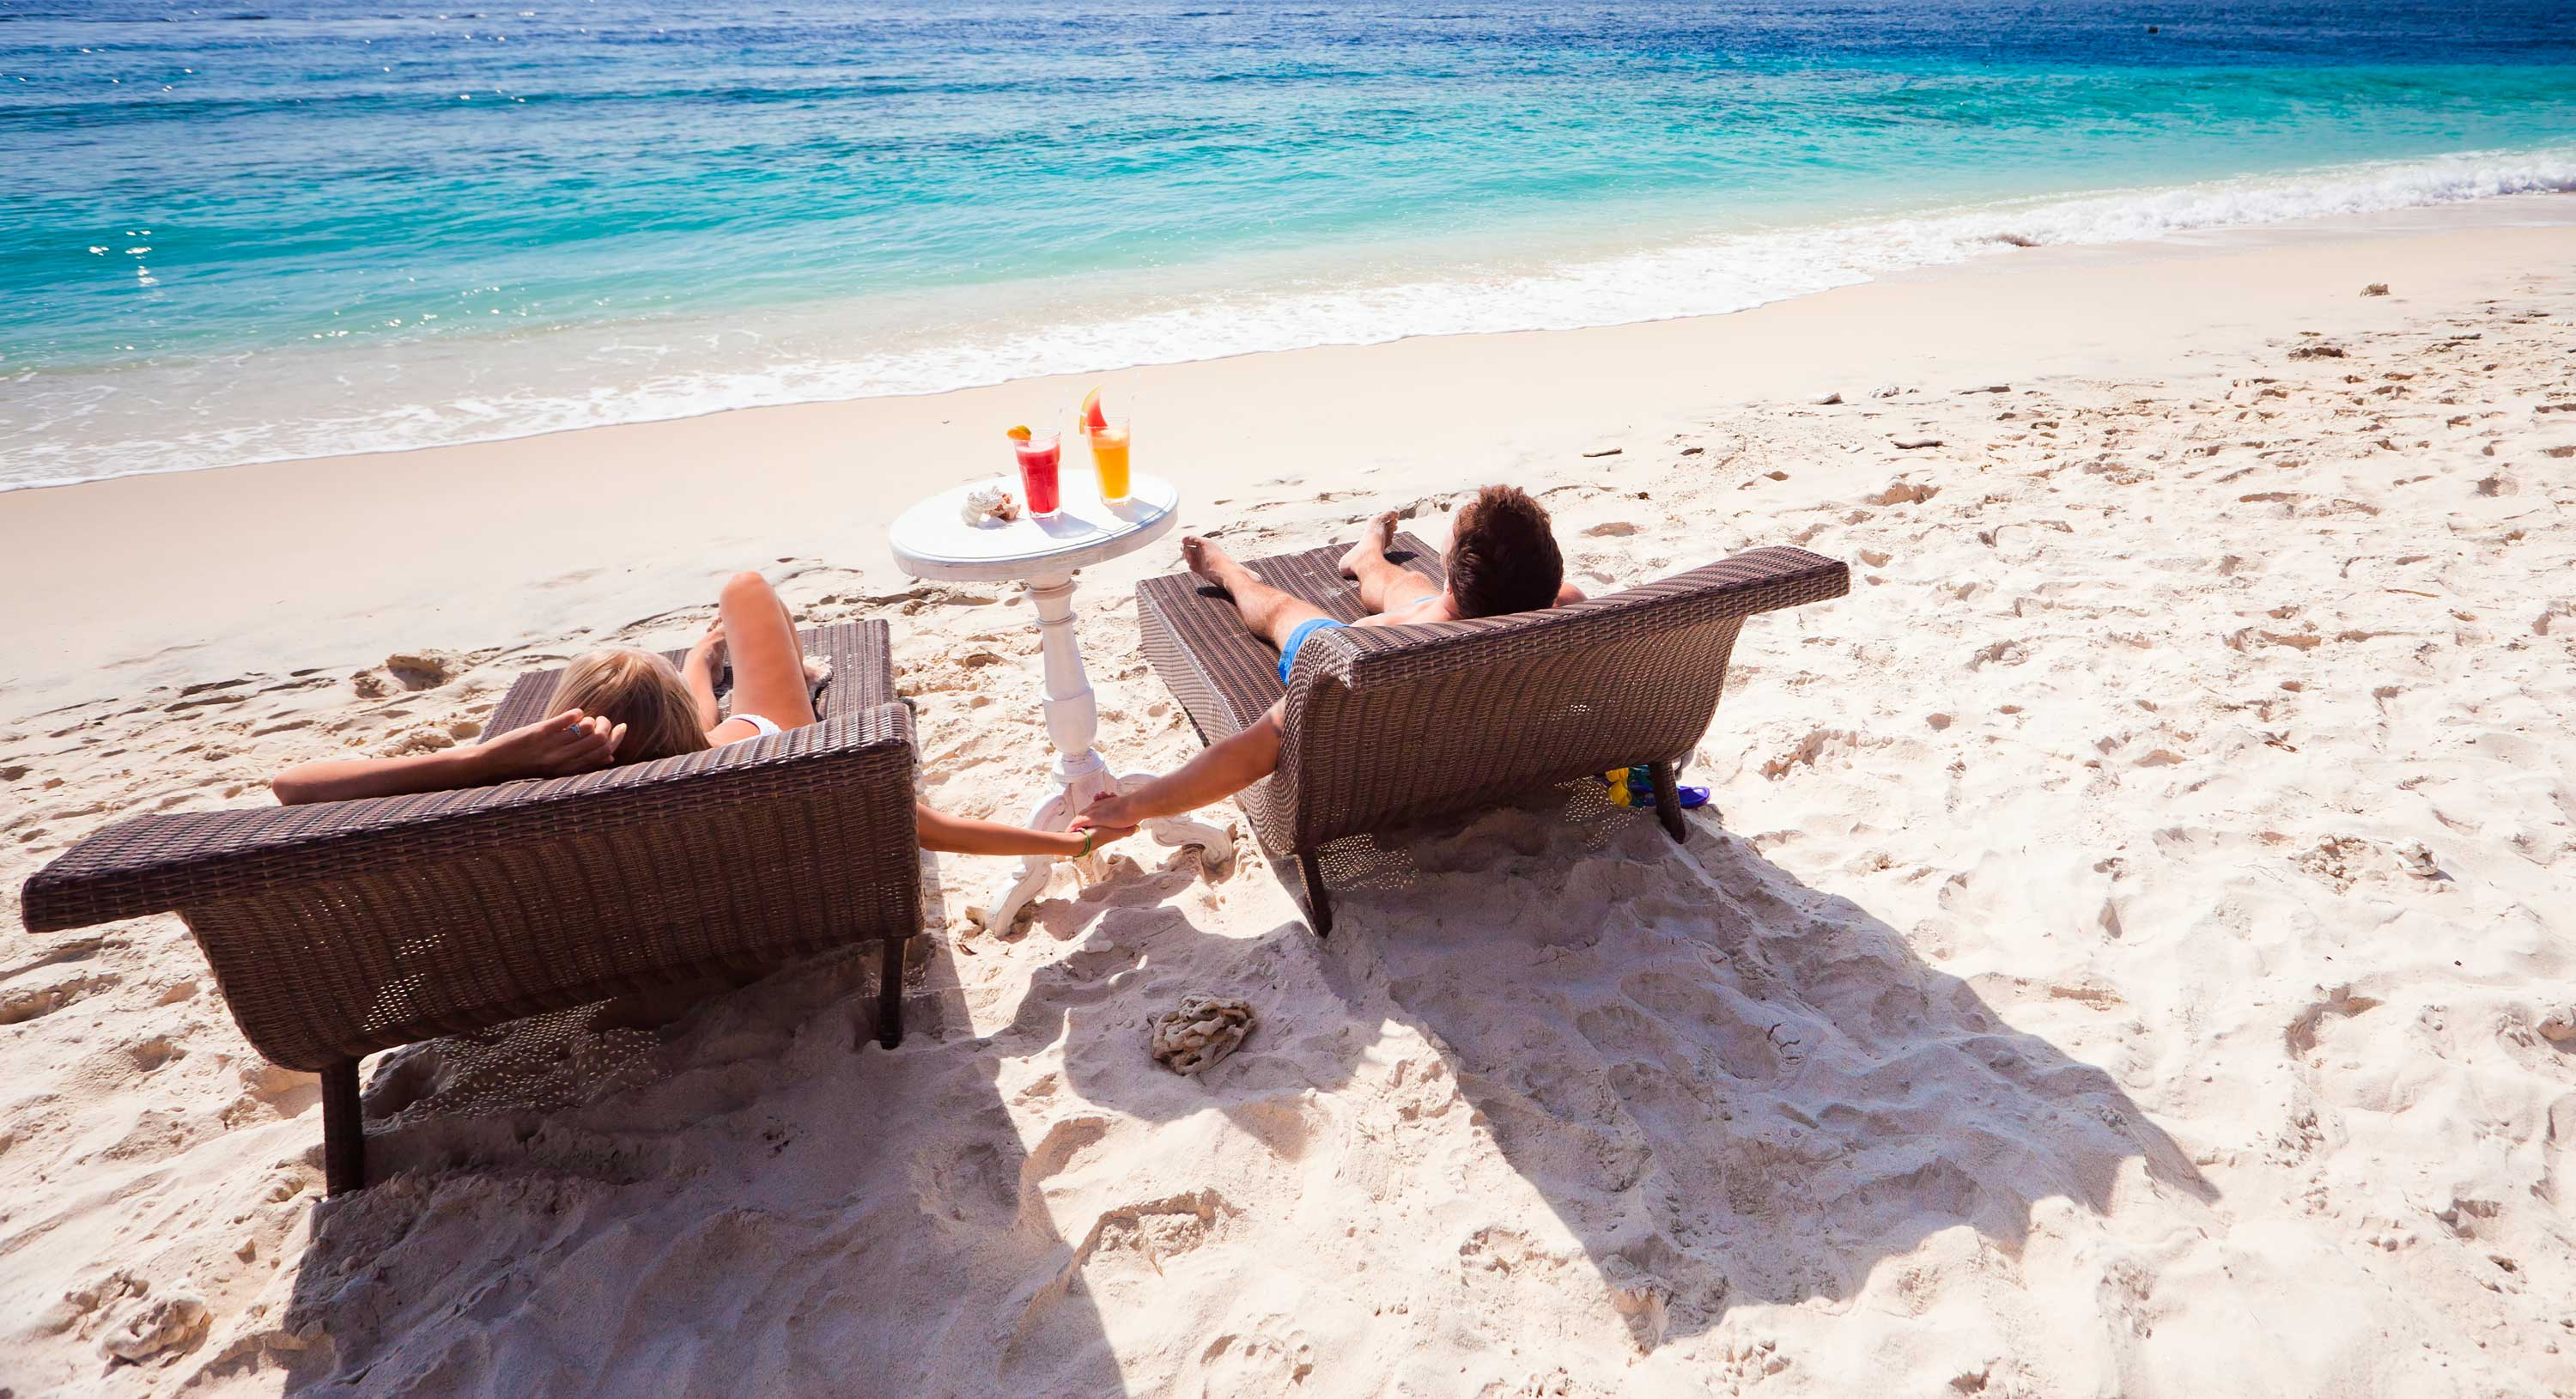 A couple realxing on sunbeds on the beach